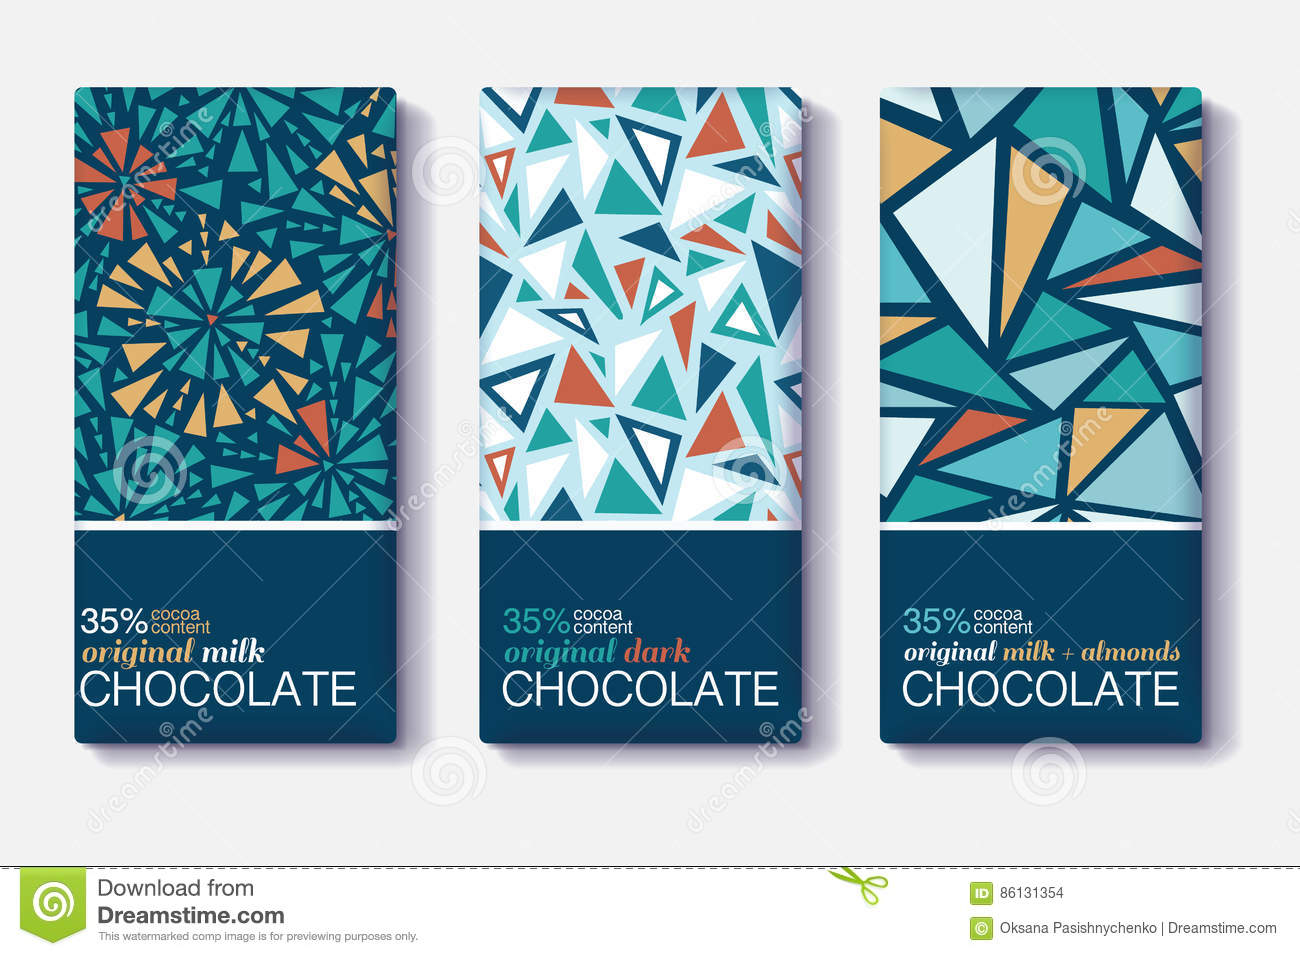 chocolate package design combined with price Illustrative chocolate wrappers showcase the biodiversity of peru — the dieline packaging & branding design & innovation news when candela dreams of eva chocolate package design on behance | fivestar branding - design and branding agency & inspiration gallery.